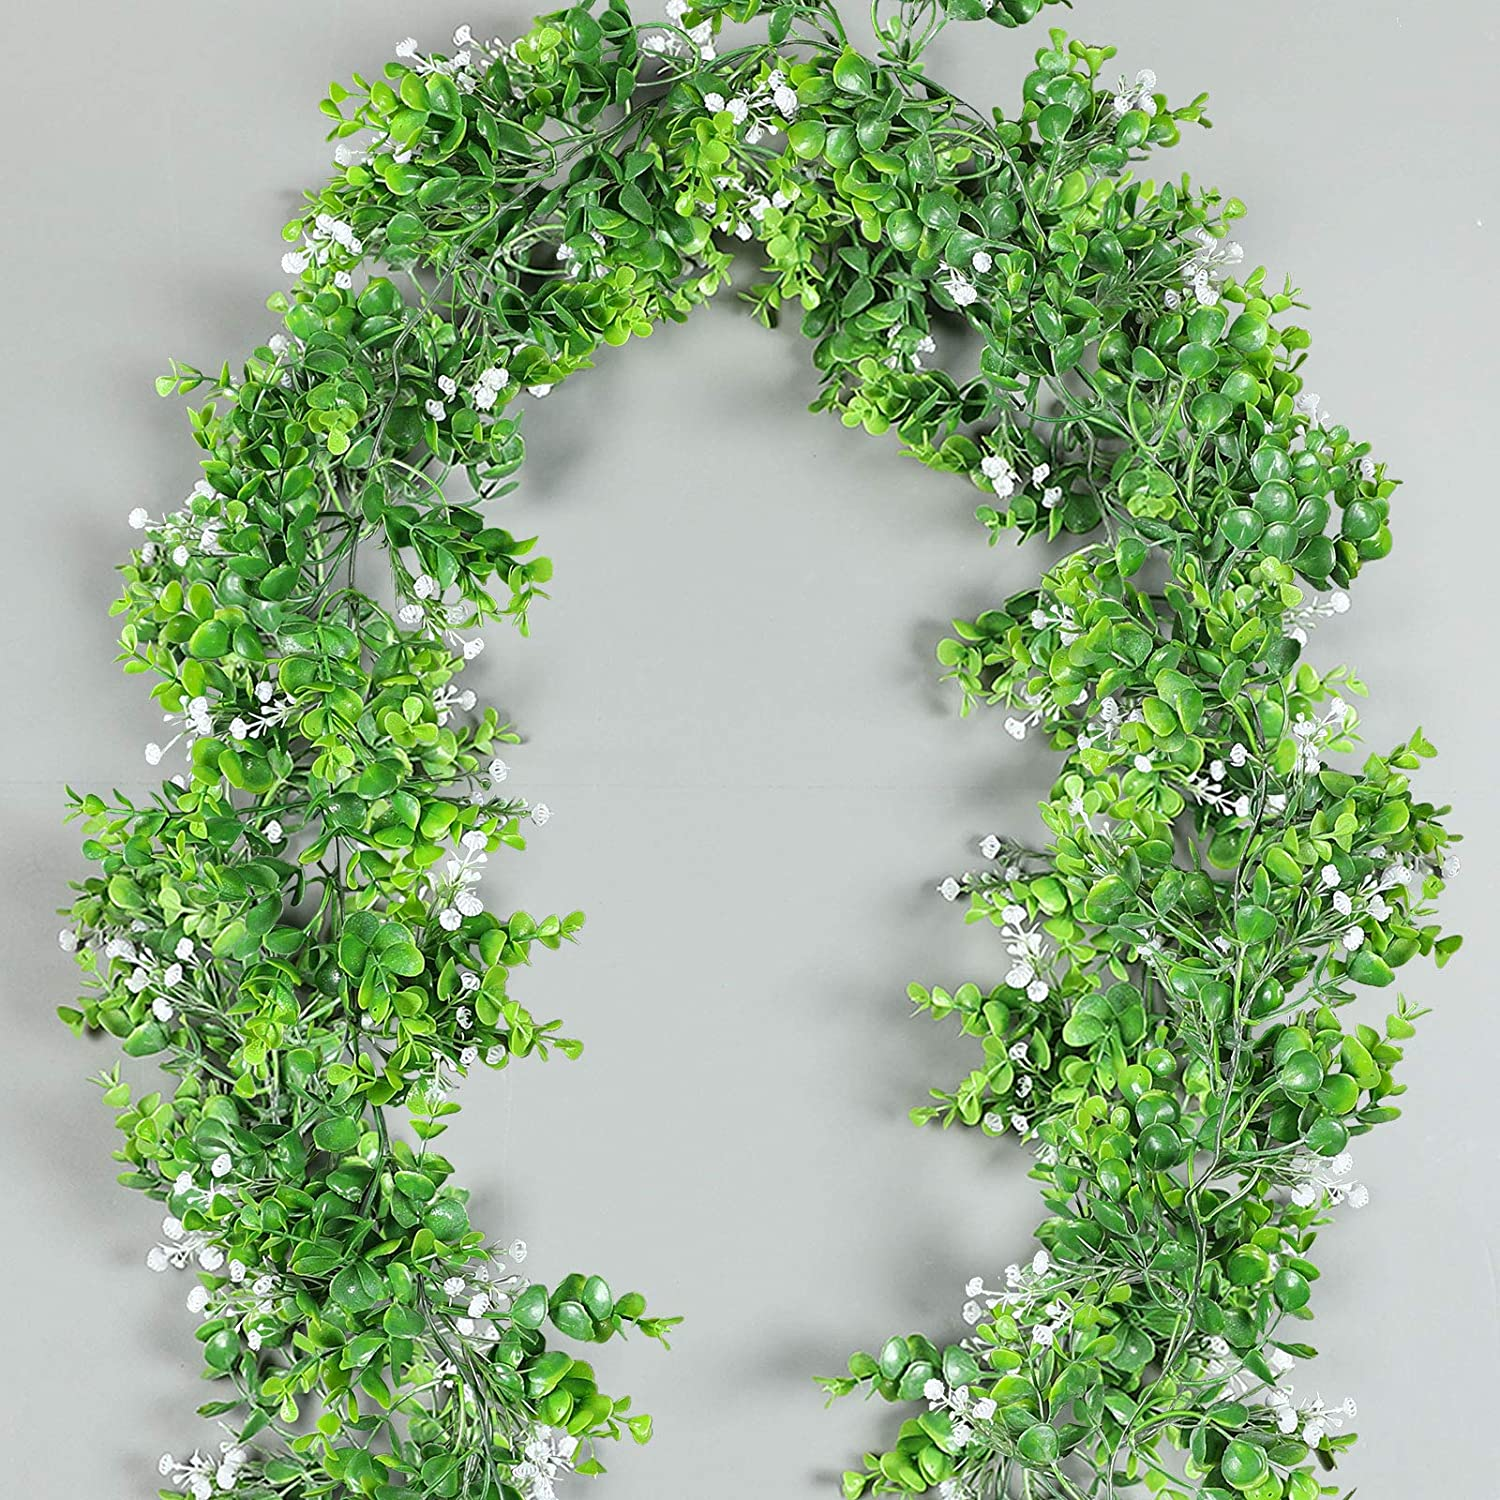 Luyue 2 Pack 5.9ft Artificial Eucalyptus Garland Plant Hanging Greenery Leaves Faux Babysbreath Flower Vines for Decoration Outdoor Wedding Arch Decor-(with White Flowers)